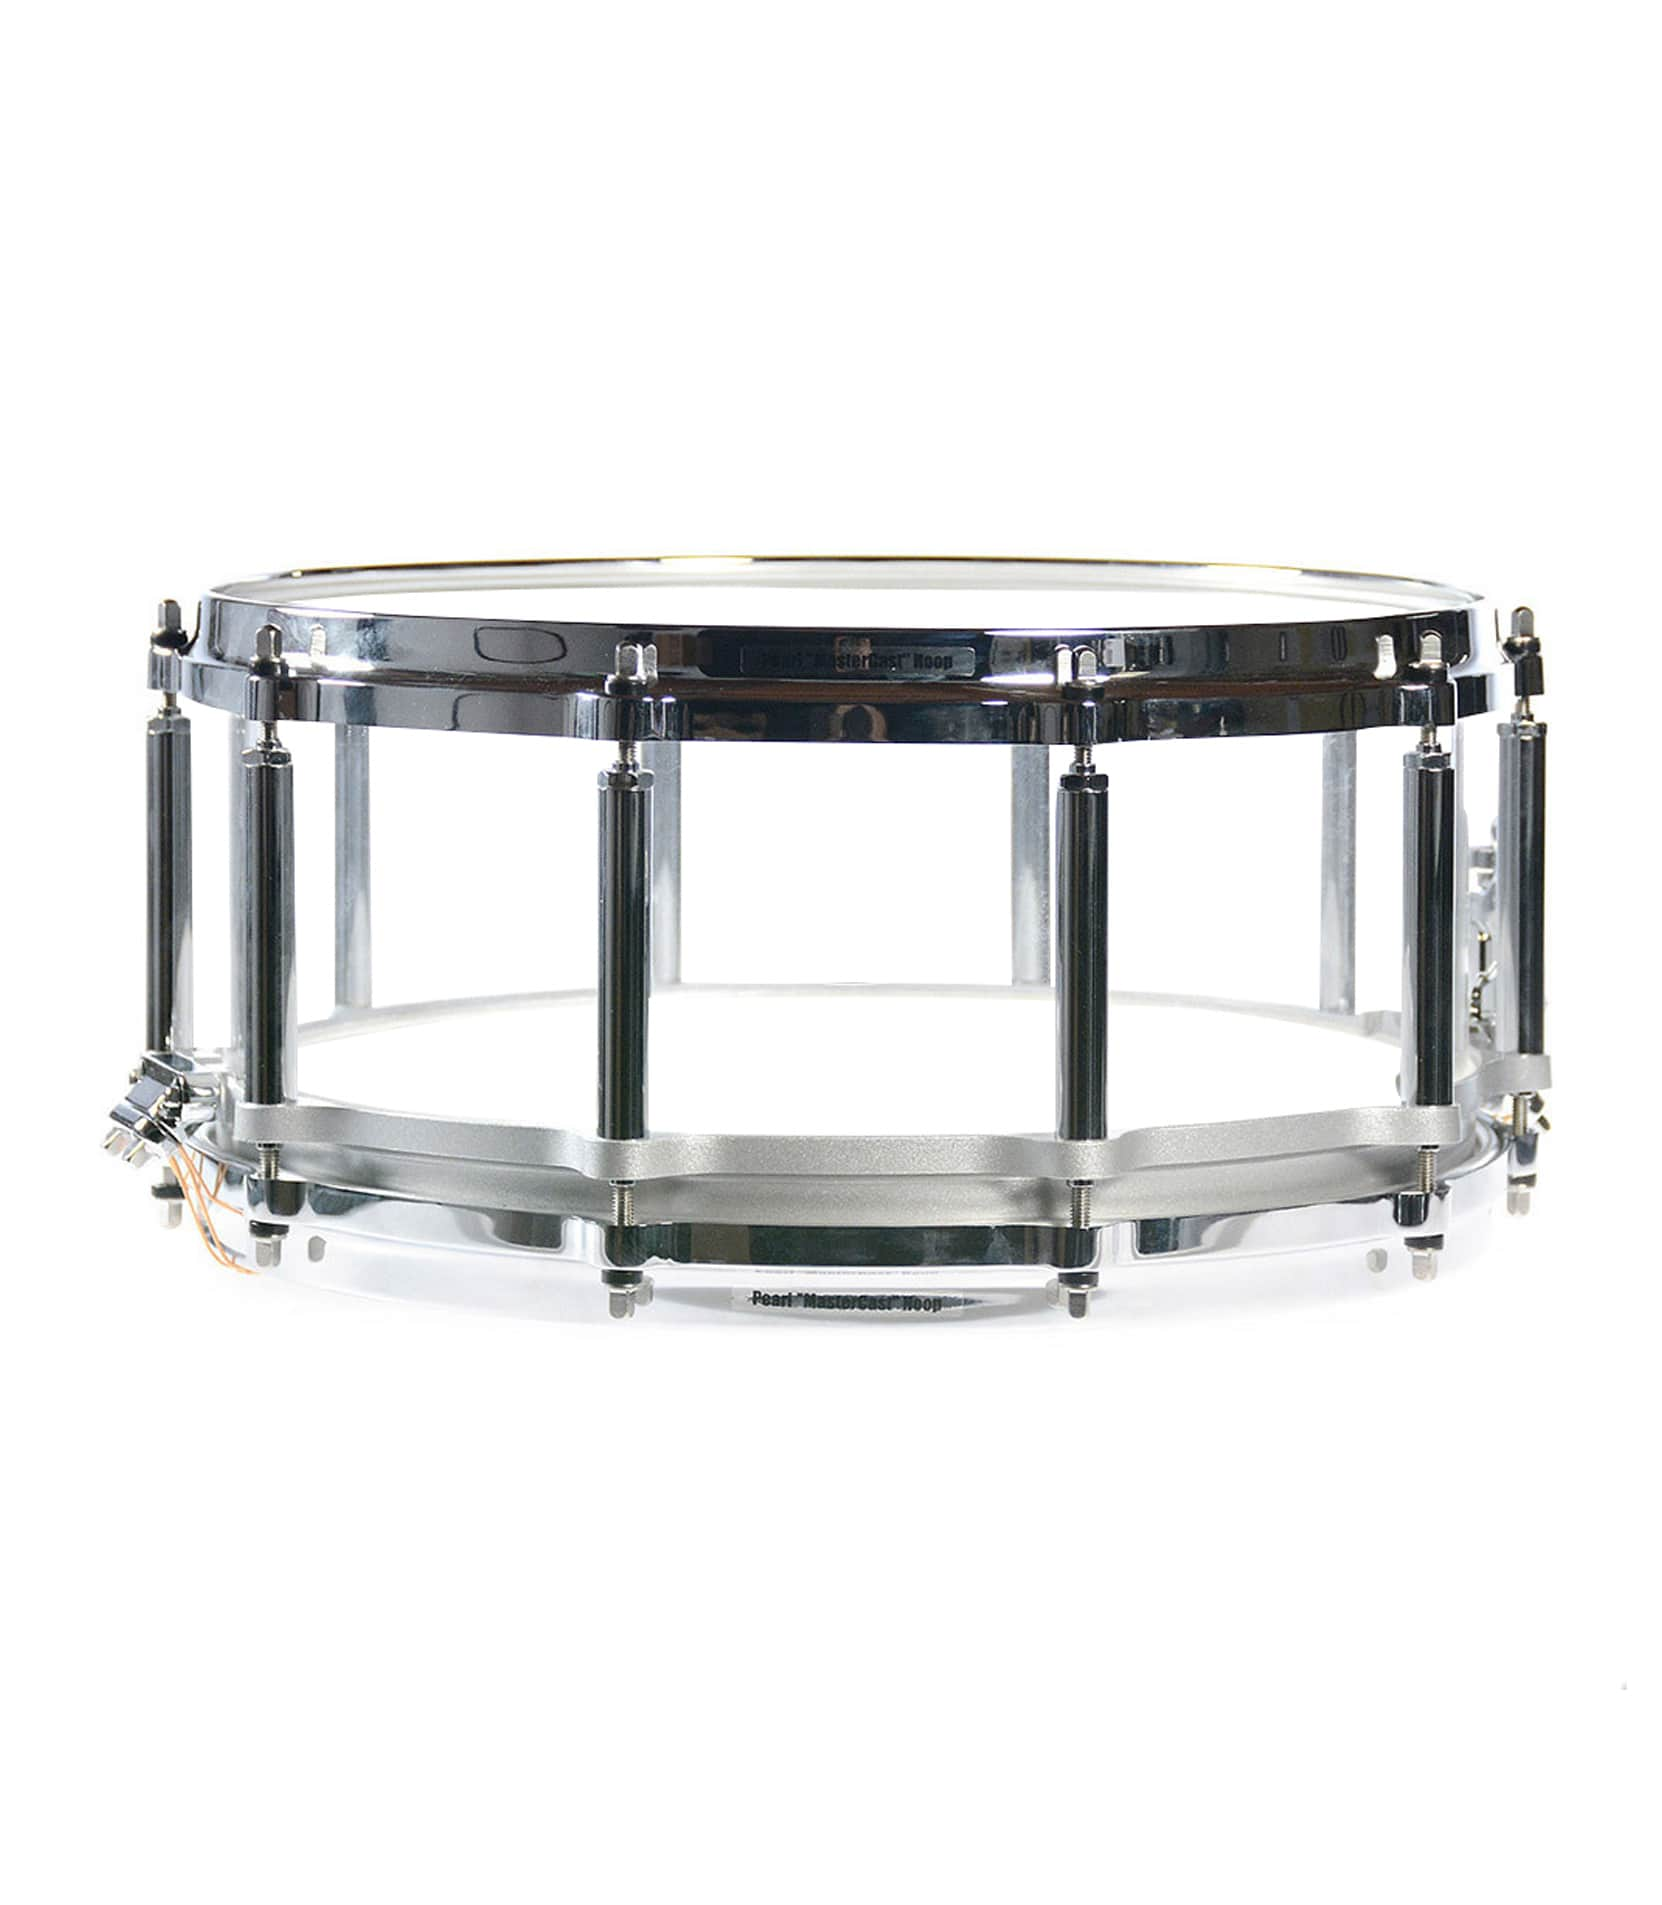 Buy Pearl - P CRB1450 C FFS Parts ONLY for Crystal Beat 14x5